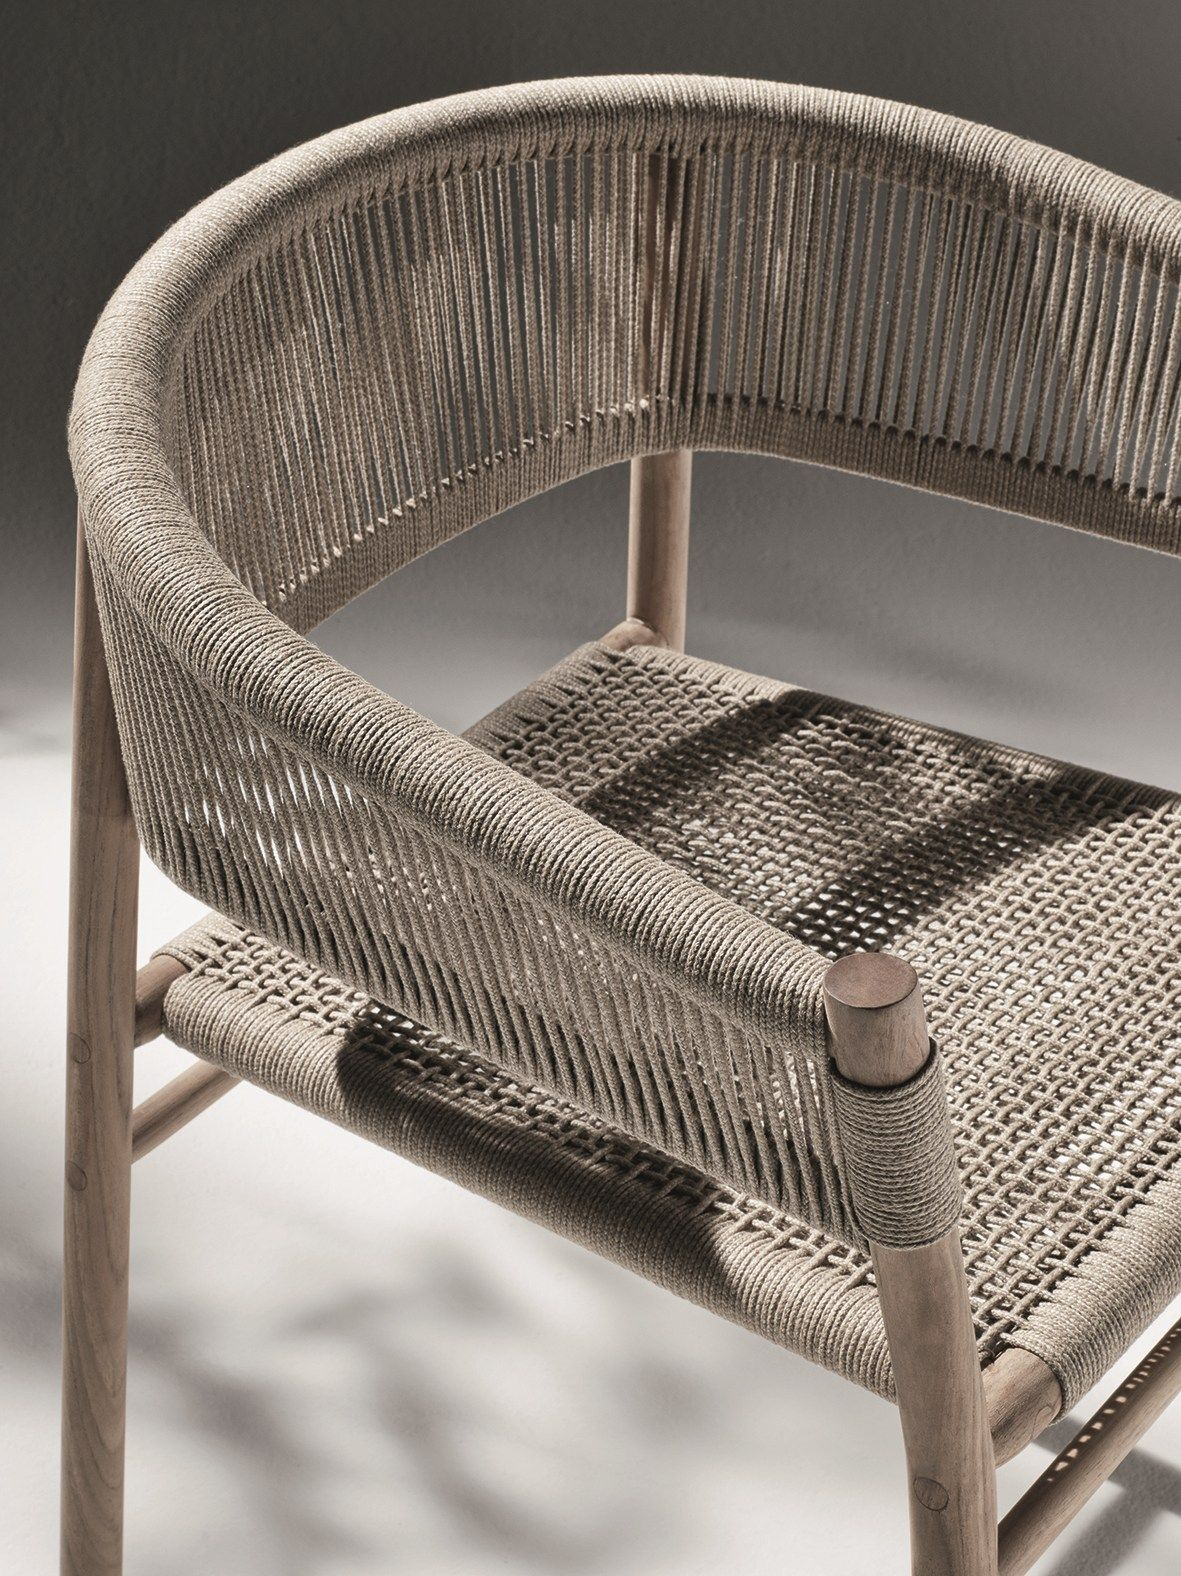 Marcello Ziliani Ethimo Kilt The New Chair On Preview At The Next Edition Of Salone Del Mobile